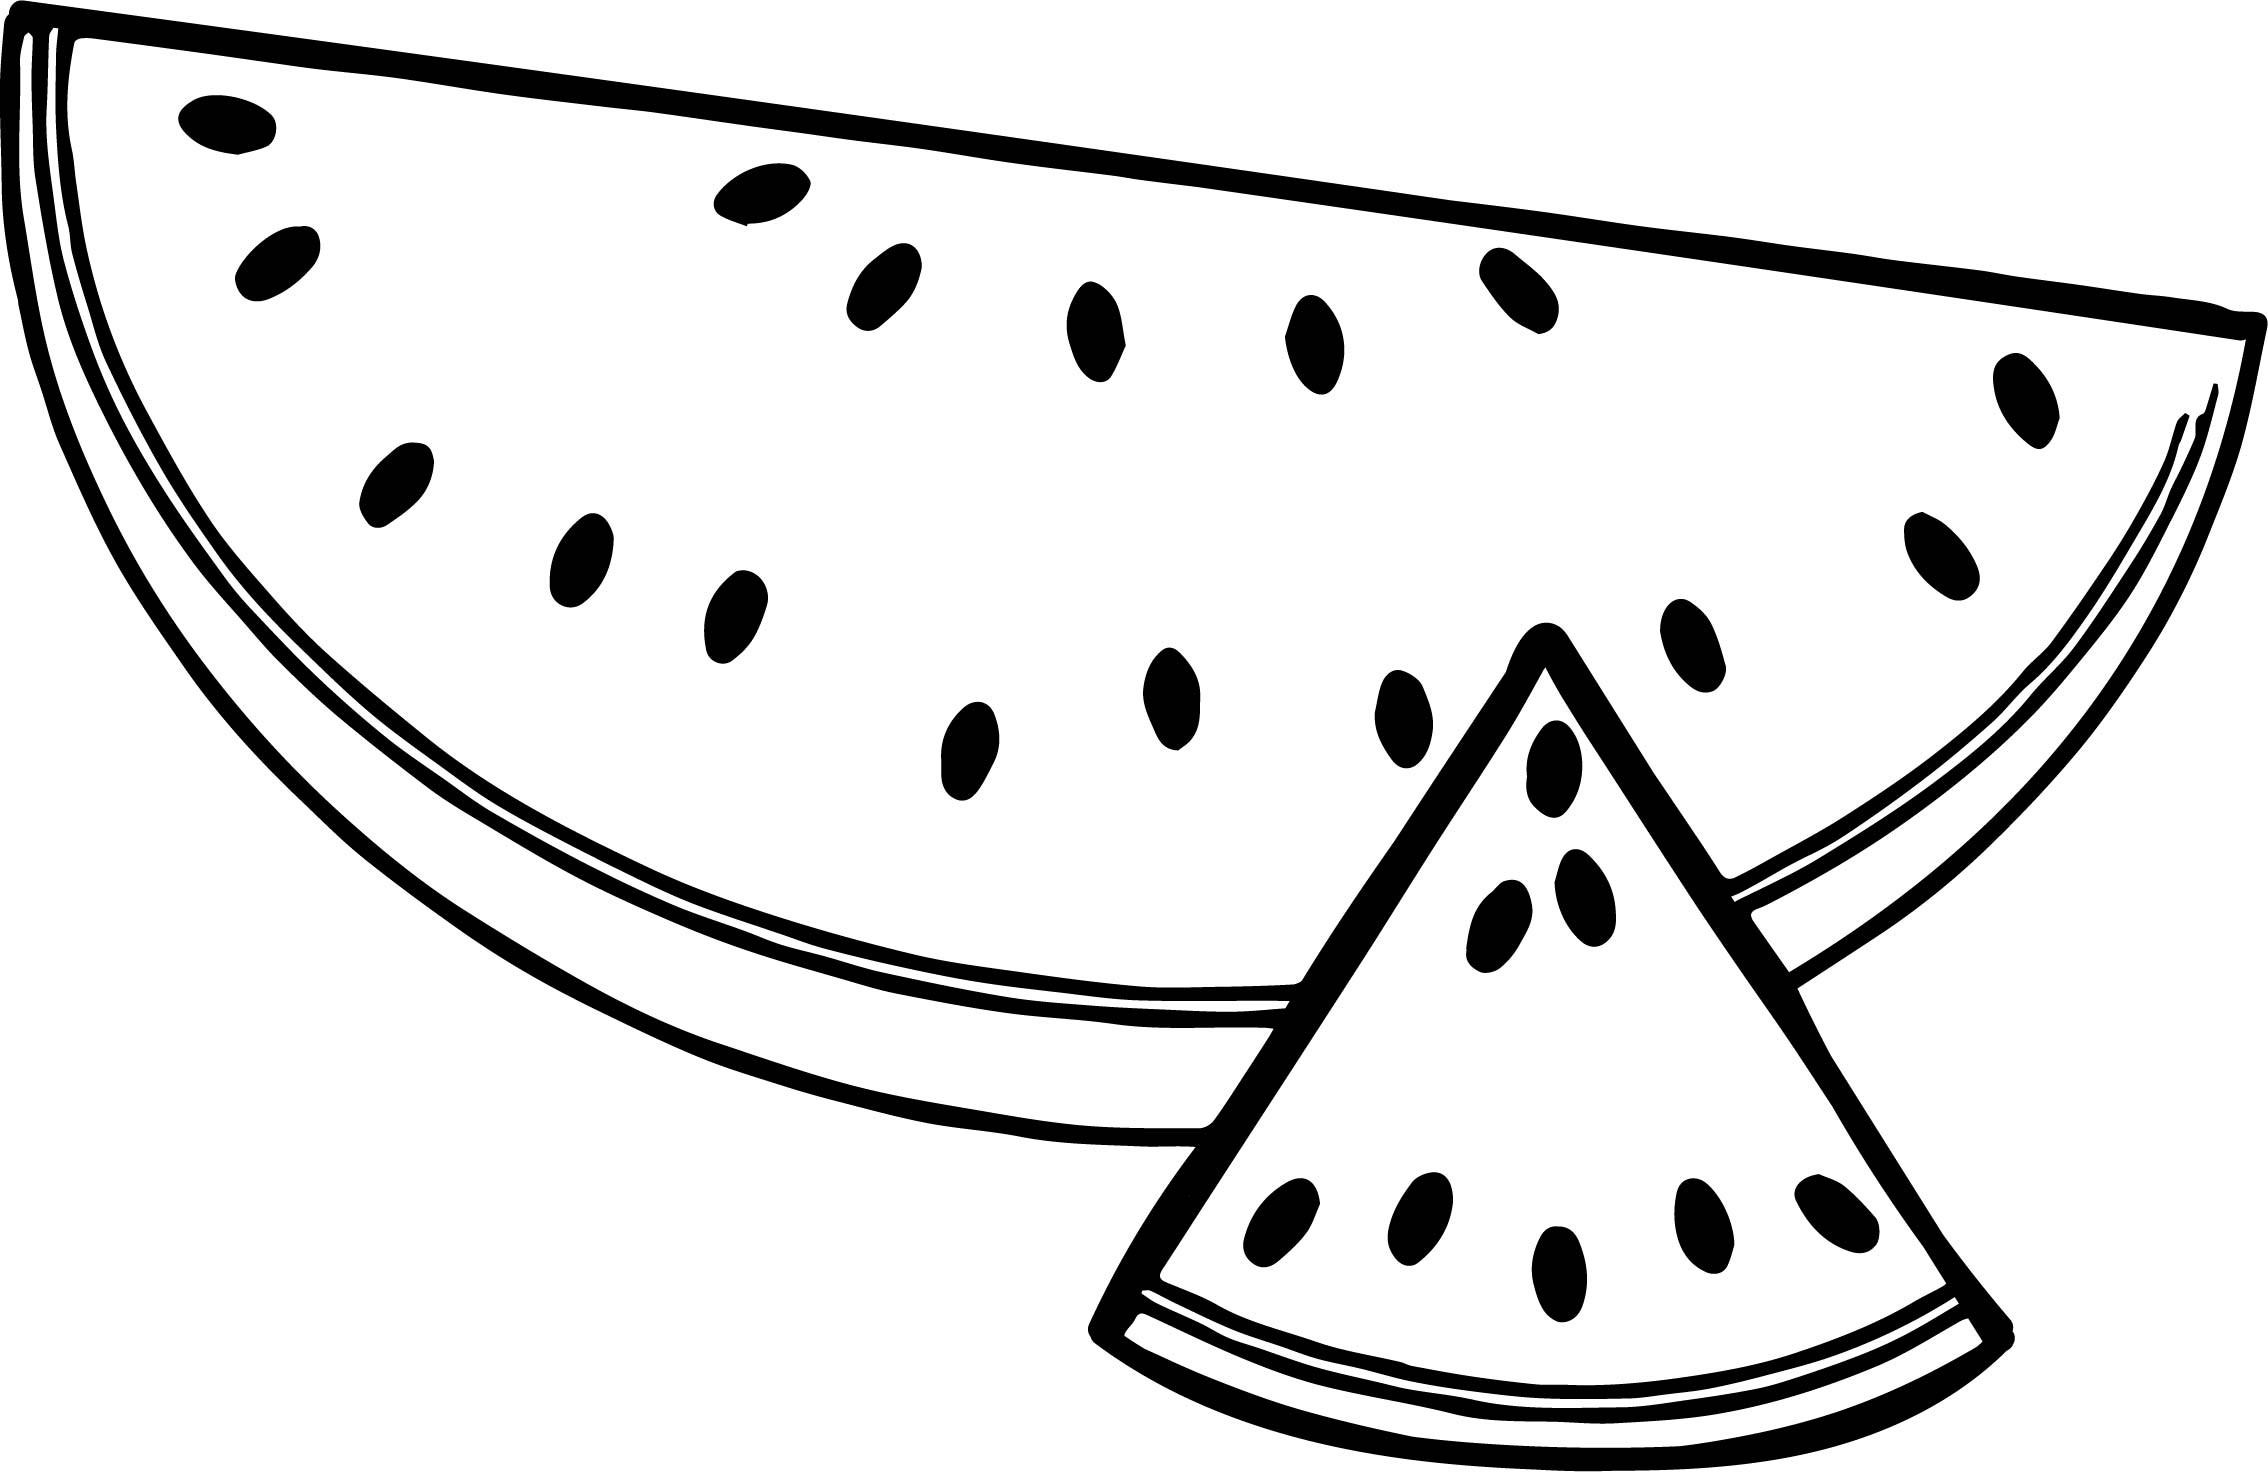 coloring pages watermelon watermelon coloring pages download and print watermelon pages watermelon coloring